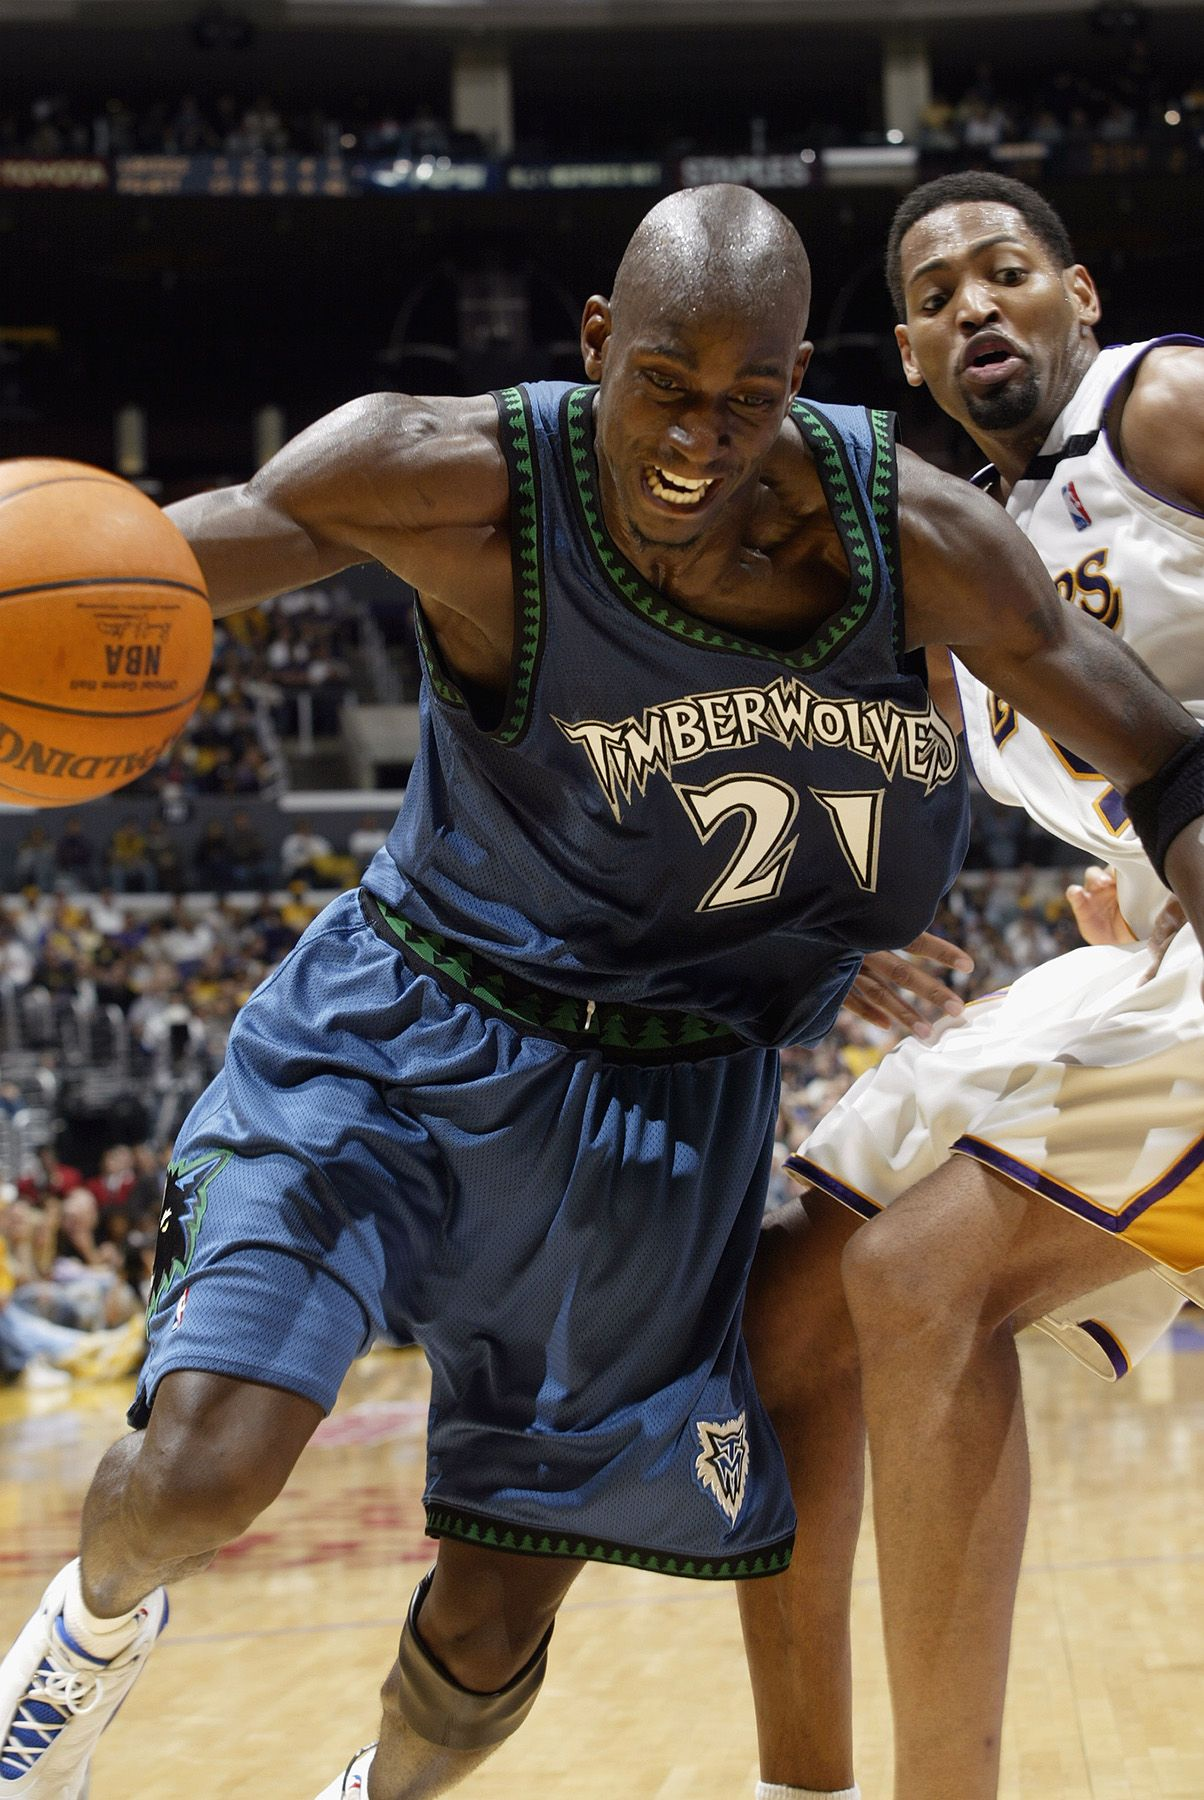 Kevin Garnett Minnesota Timberwolves Robert Horry Los Angeles